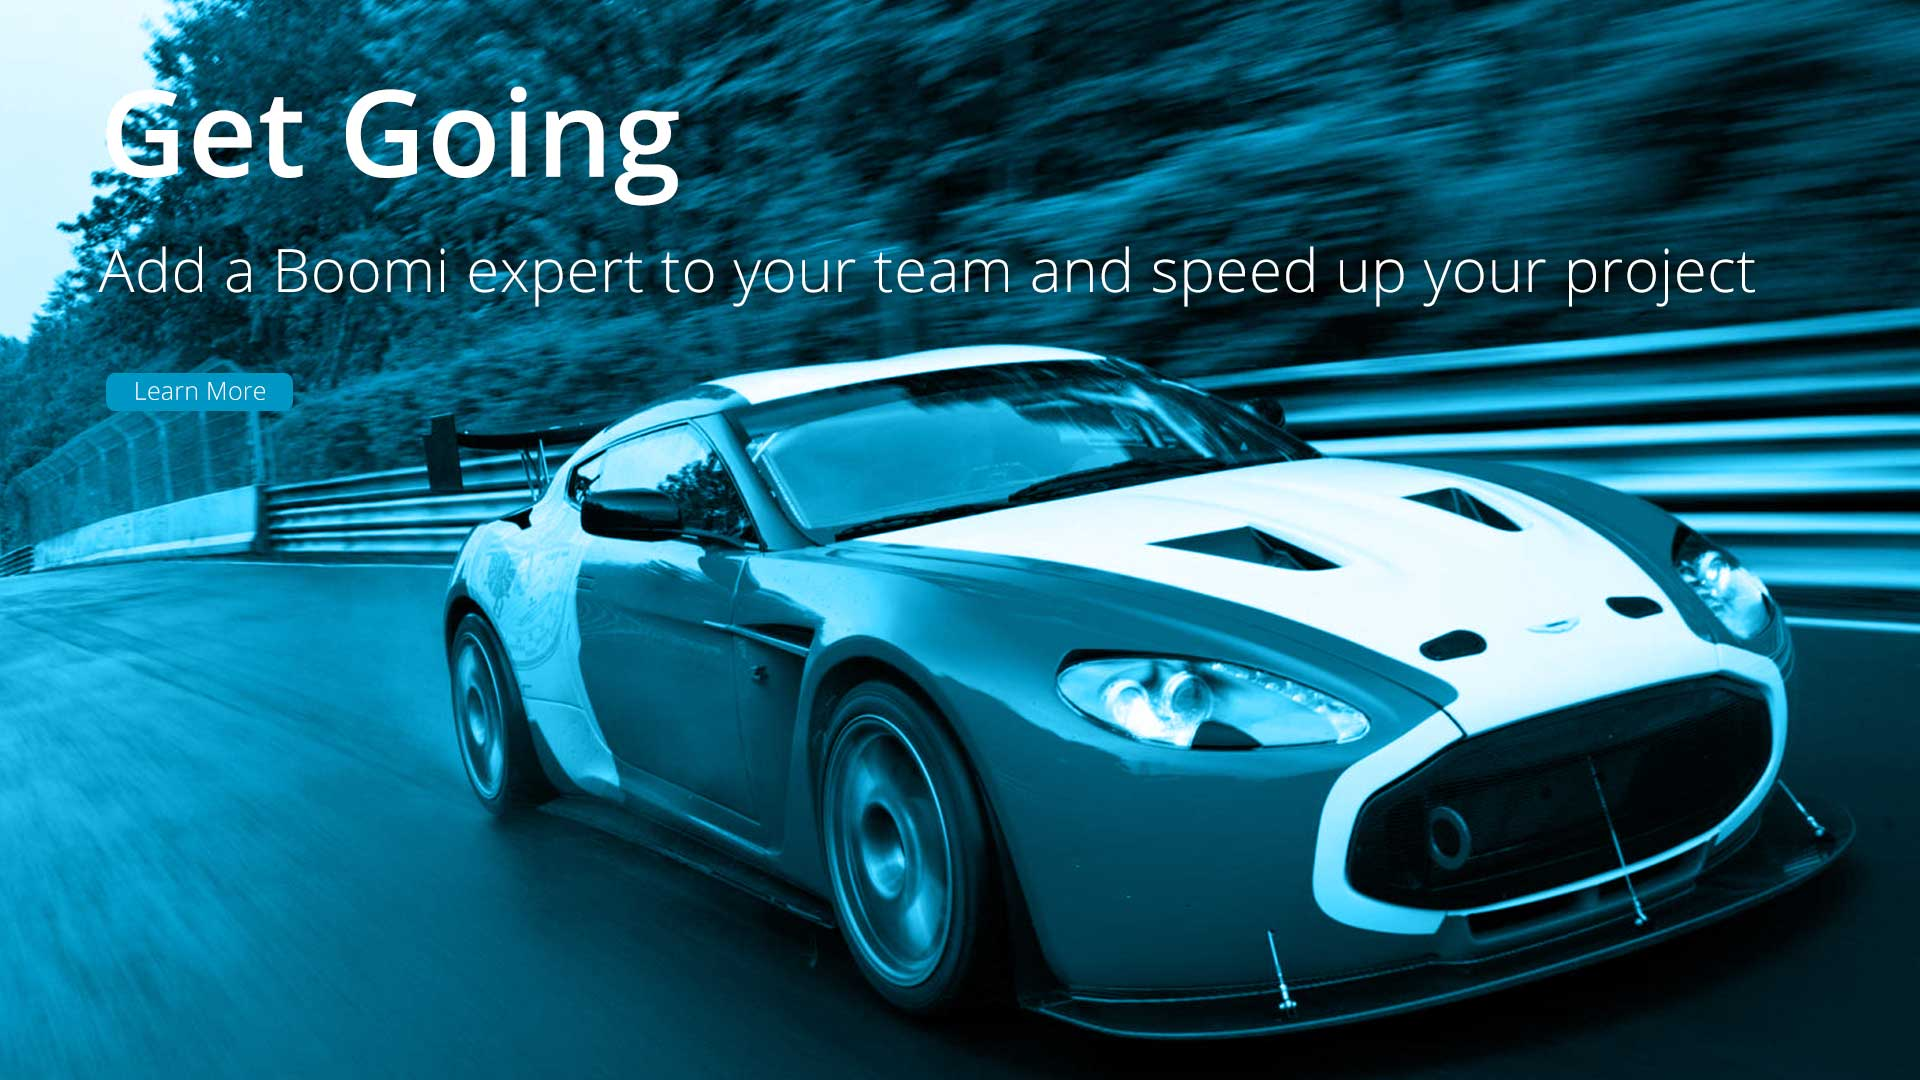 Add a Boomi Expert to Your Team to Speed Up the Project